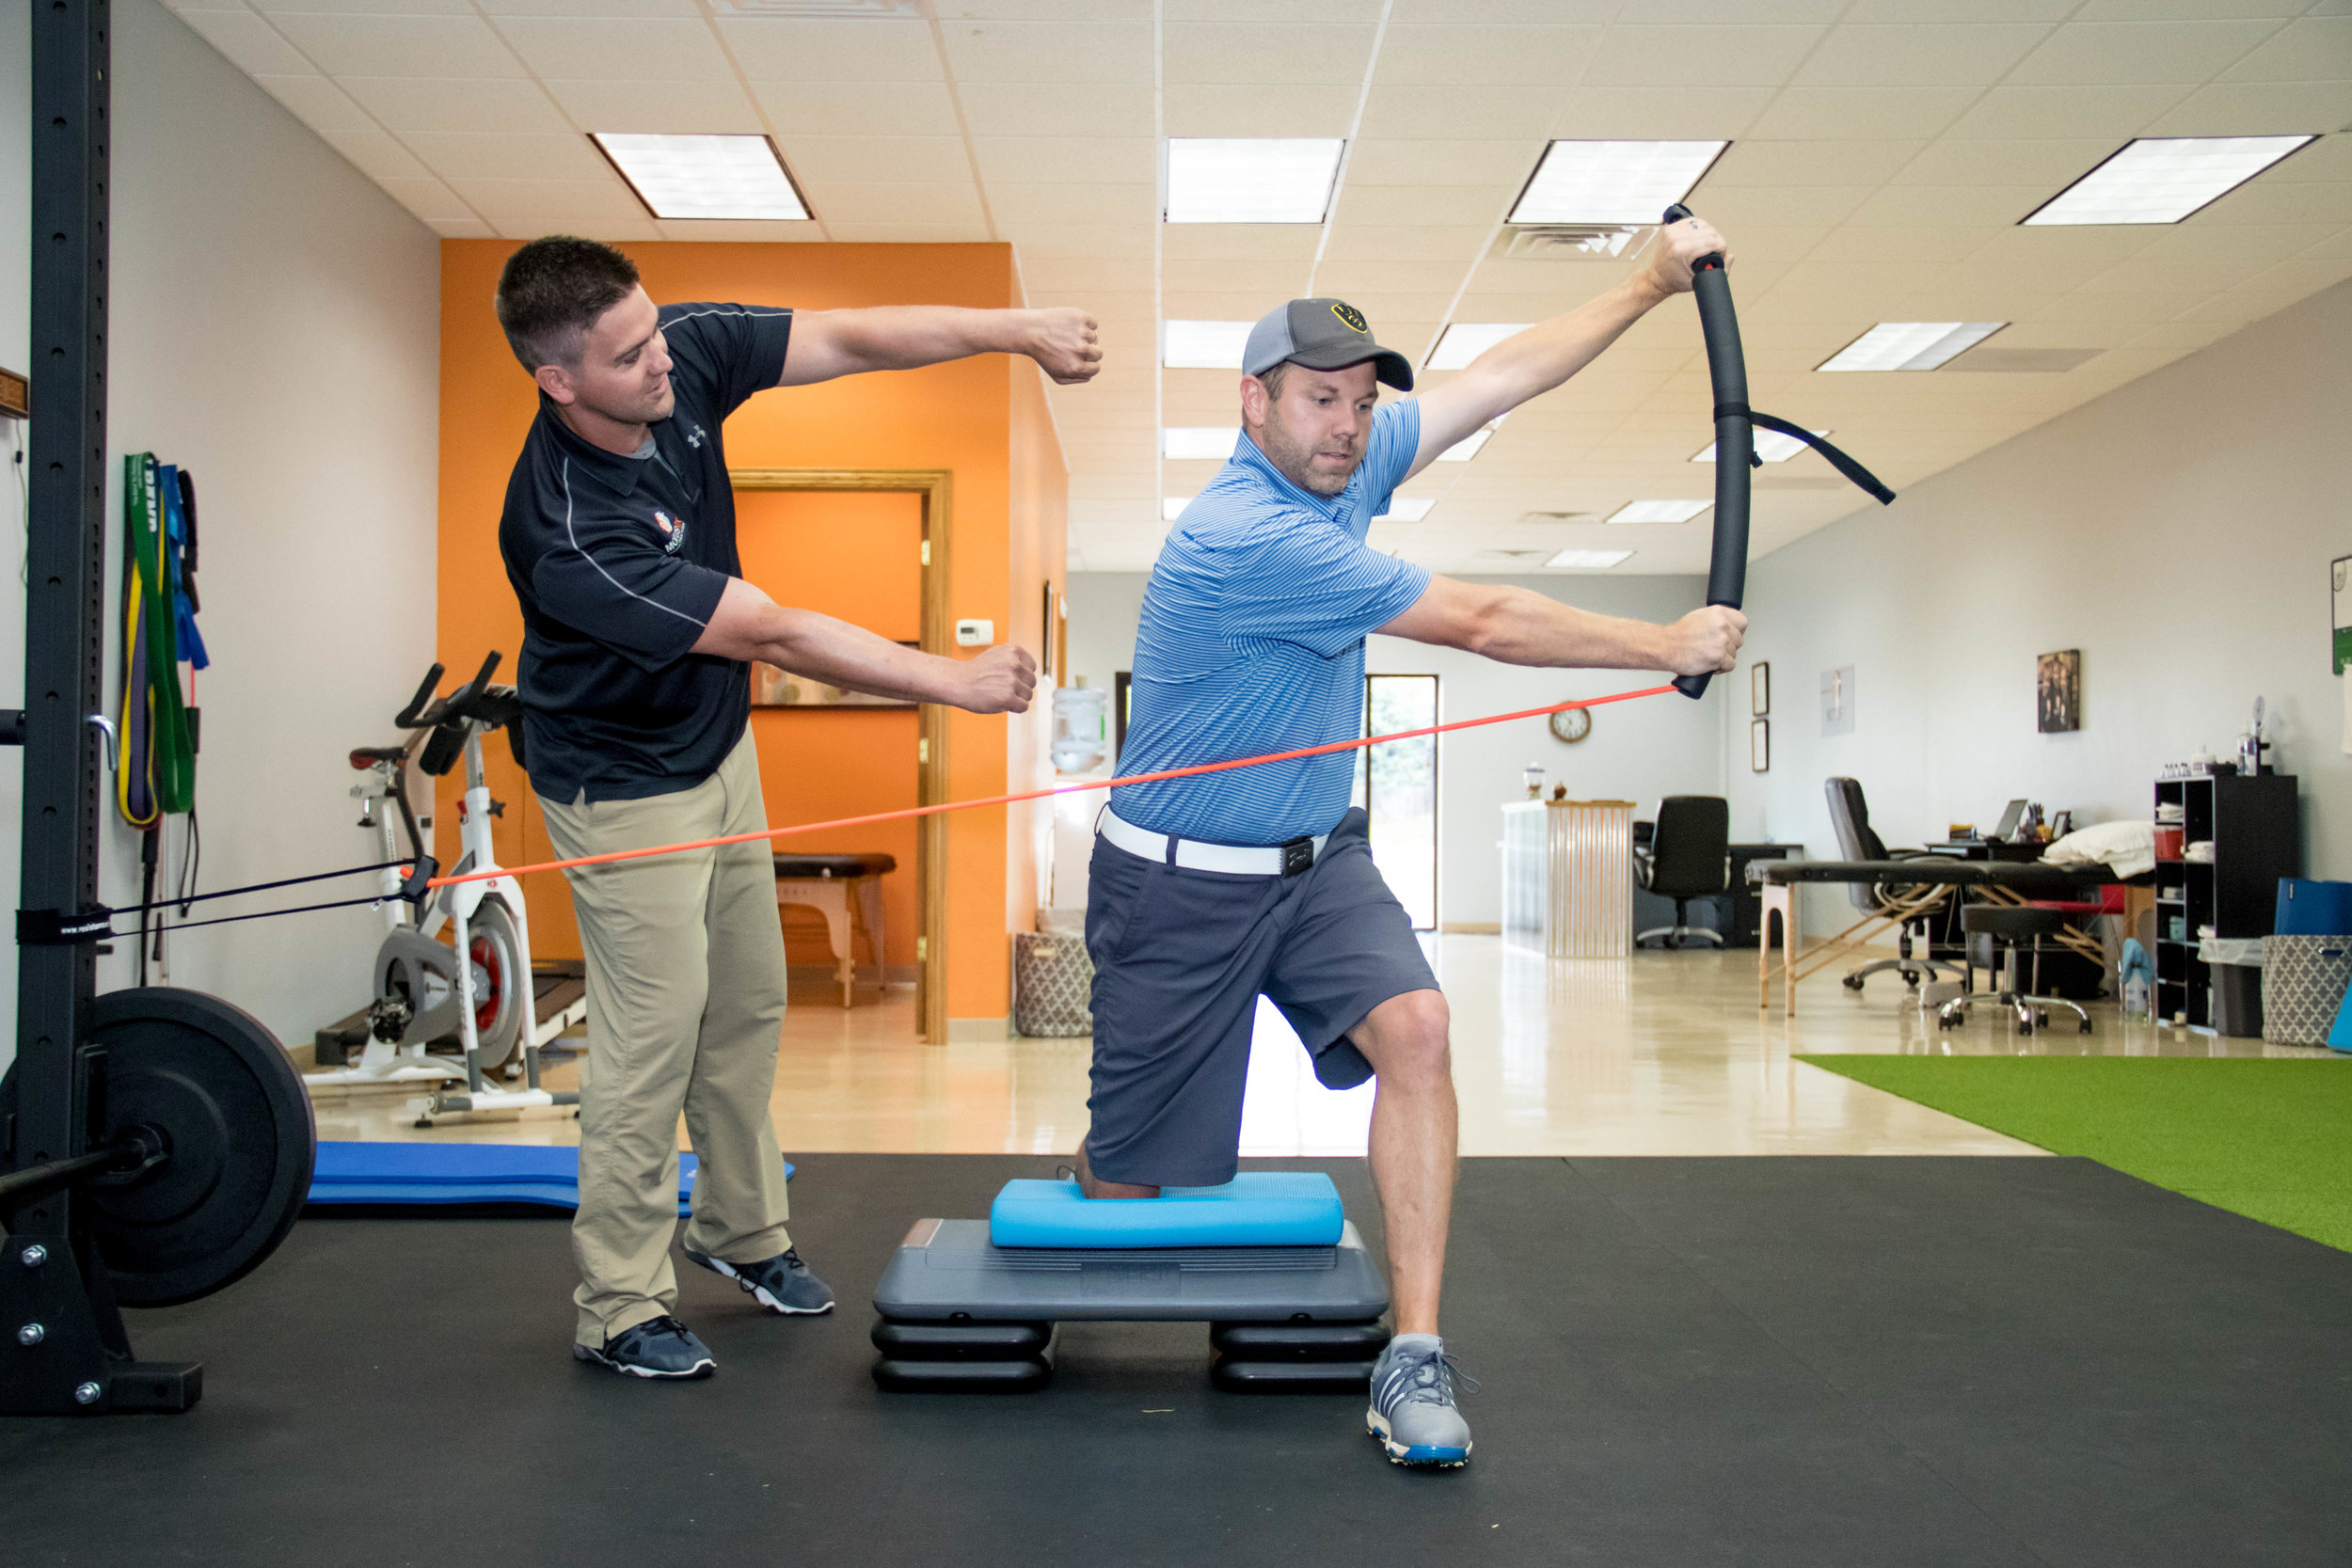 Request A Free Titleist Golf Screen - Get some good information about how your body is affecting your golf swing, FOR FREE!